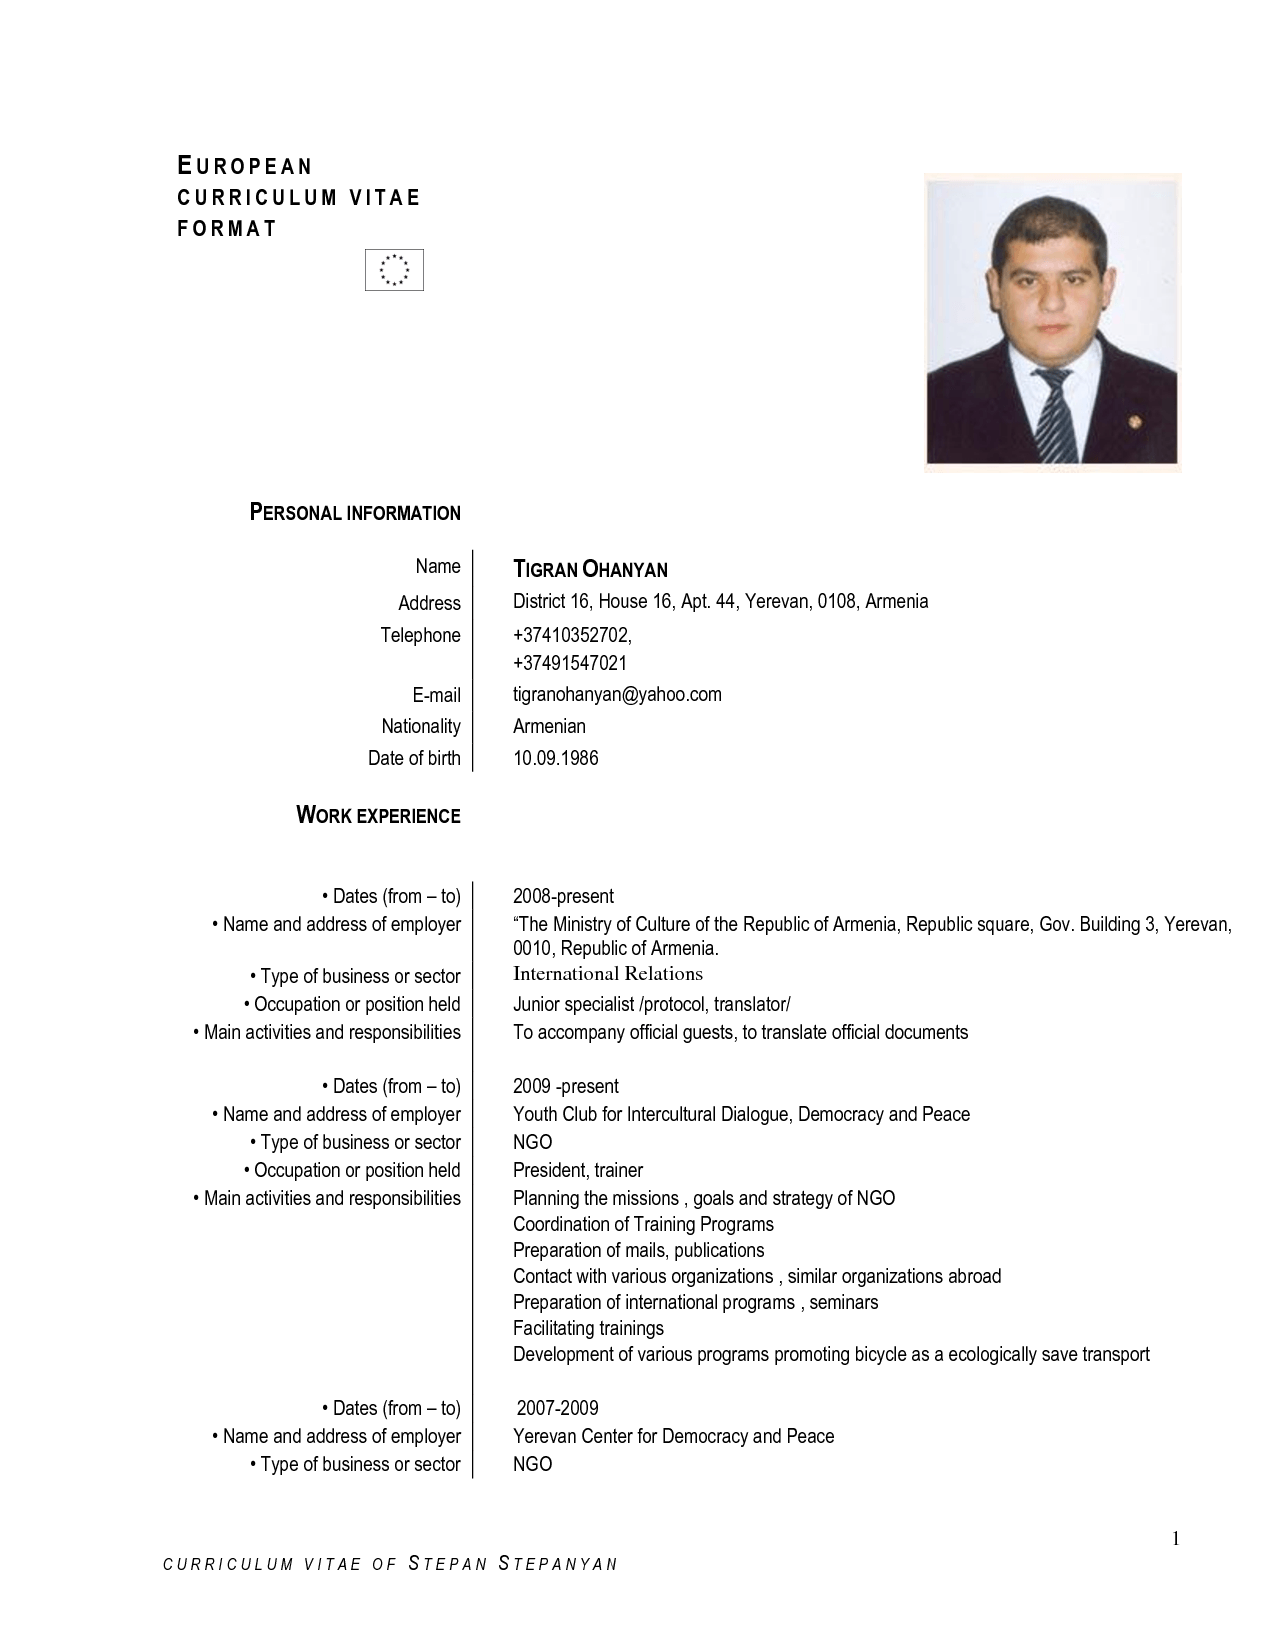 a cv in english example